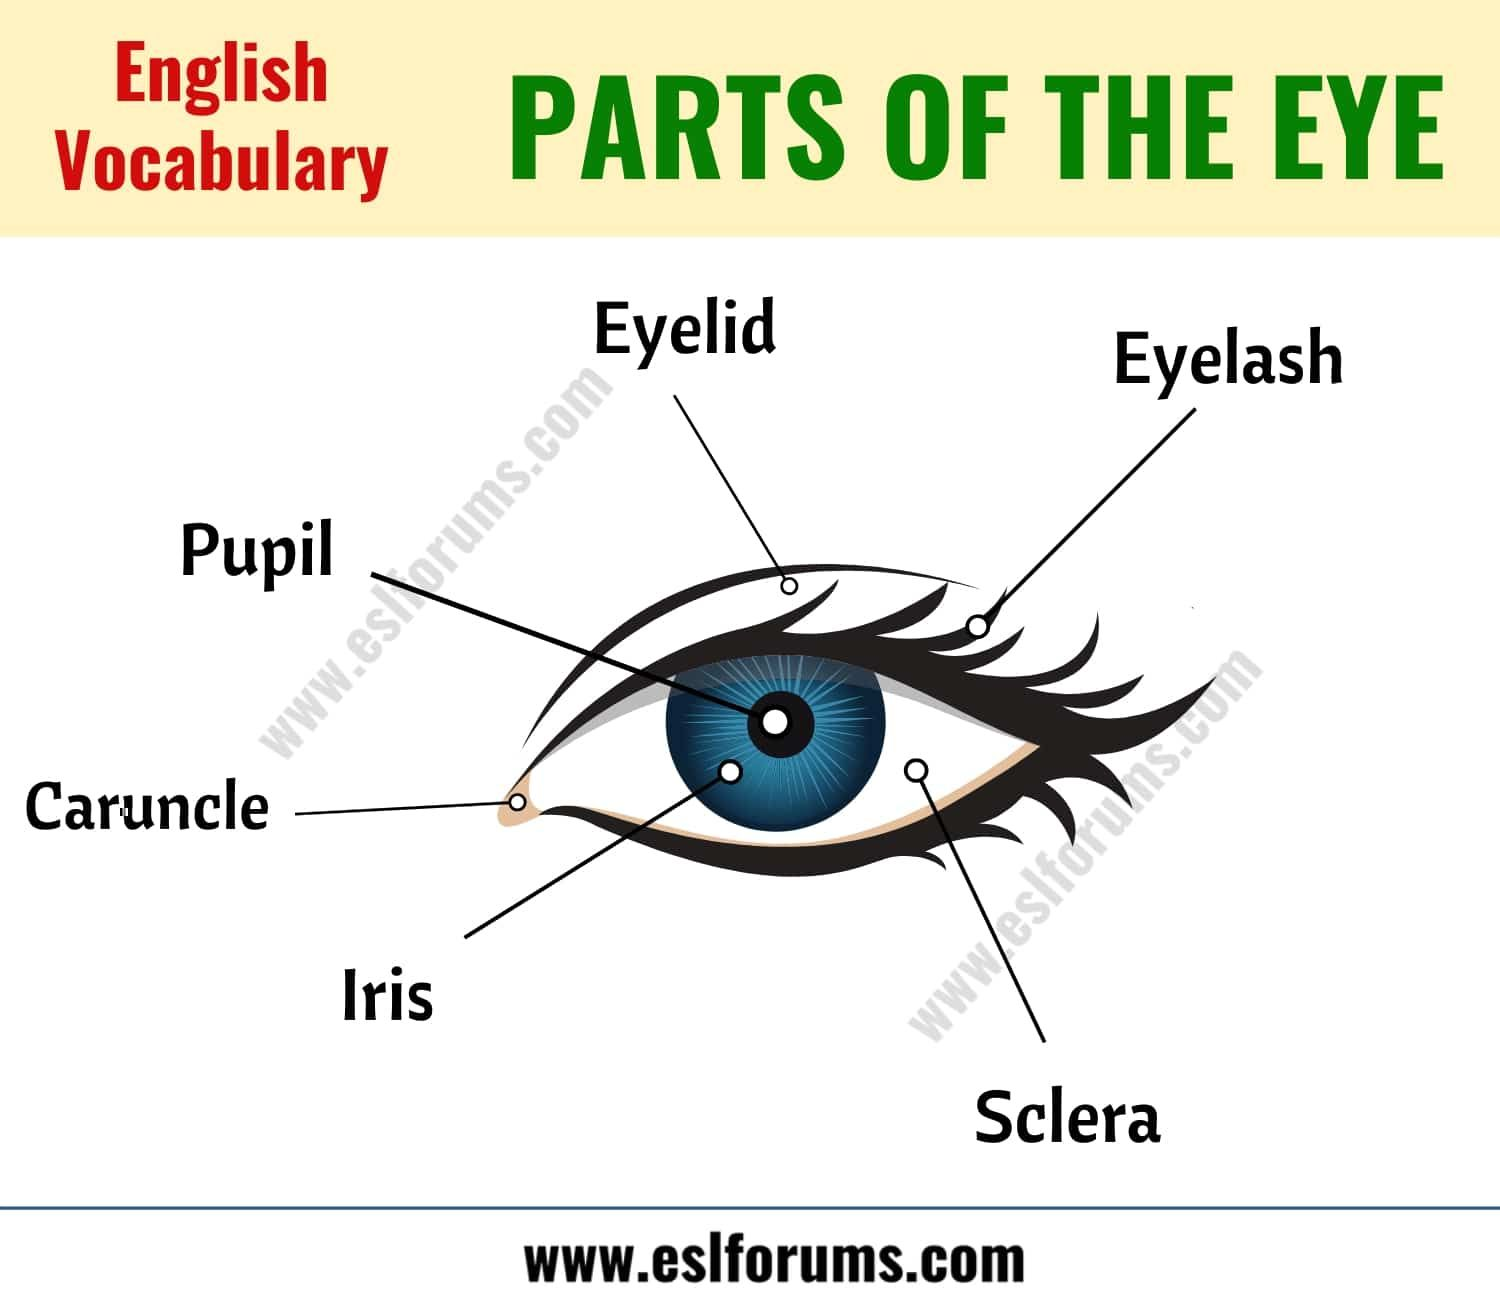 Parts Of The Eye Learn Different Eye Parts With Esl